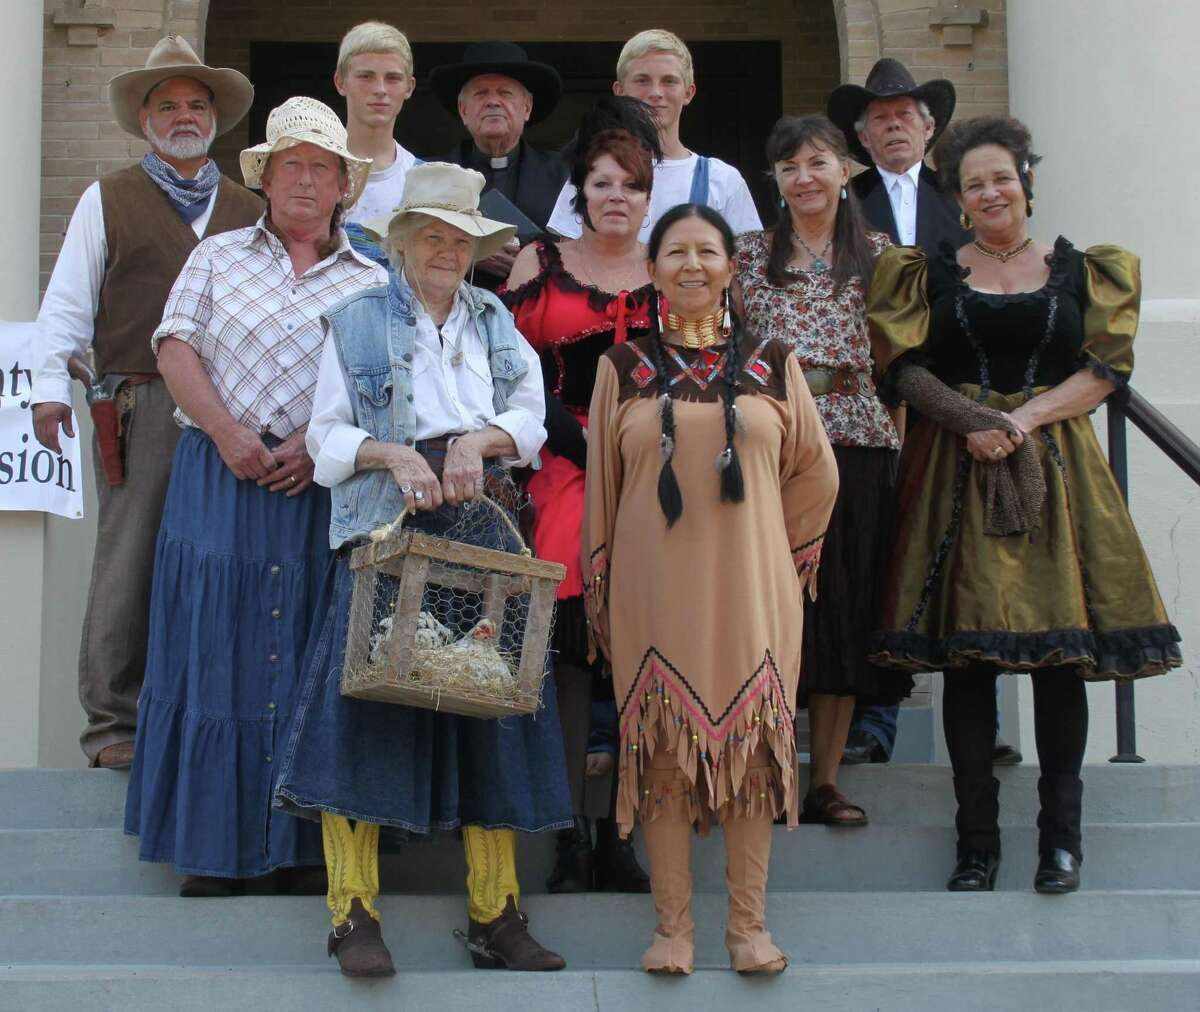 Characters from the upcoming Heritage Days event made an appearance during the first day of the San Jacinto County 145th anniversary celebration. Back row: Anthony Martinez, Avery Hickman, Dale Everitt, Aston Hickman and Wes Rogers. Middle row: Pam Jackson, Brenda Aucoin, Kathy Lewis and Marsha Paige. Front row: Dot Garland and Anita Nalson.